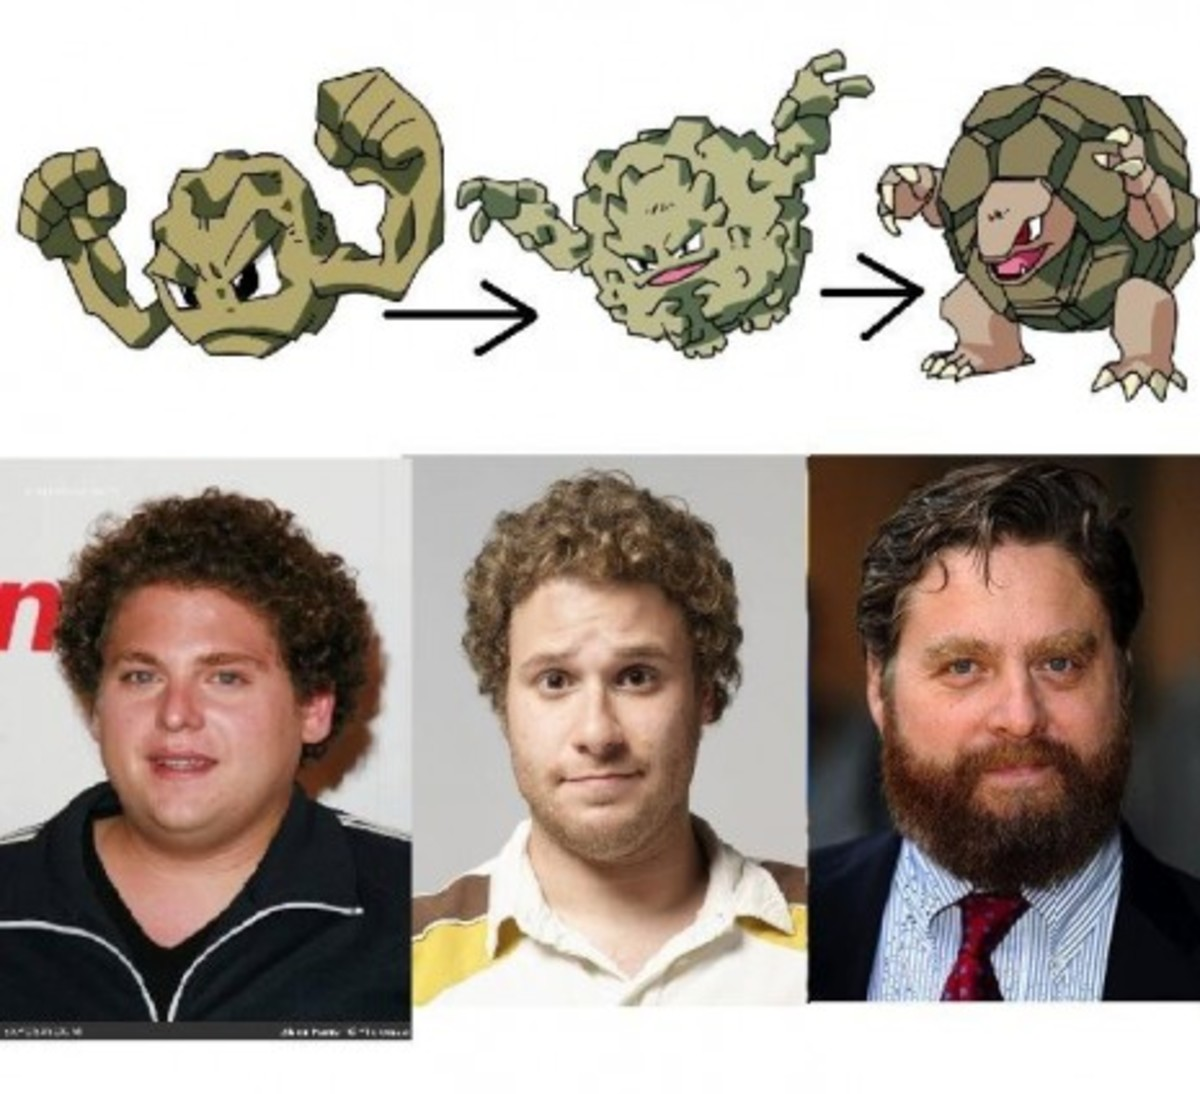 The original celebrity Pokémon Evolution Meme